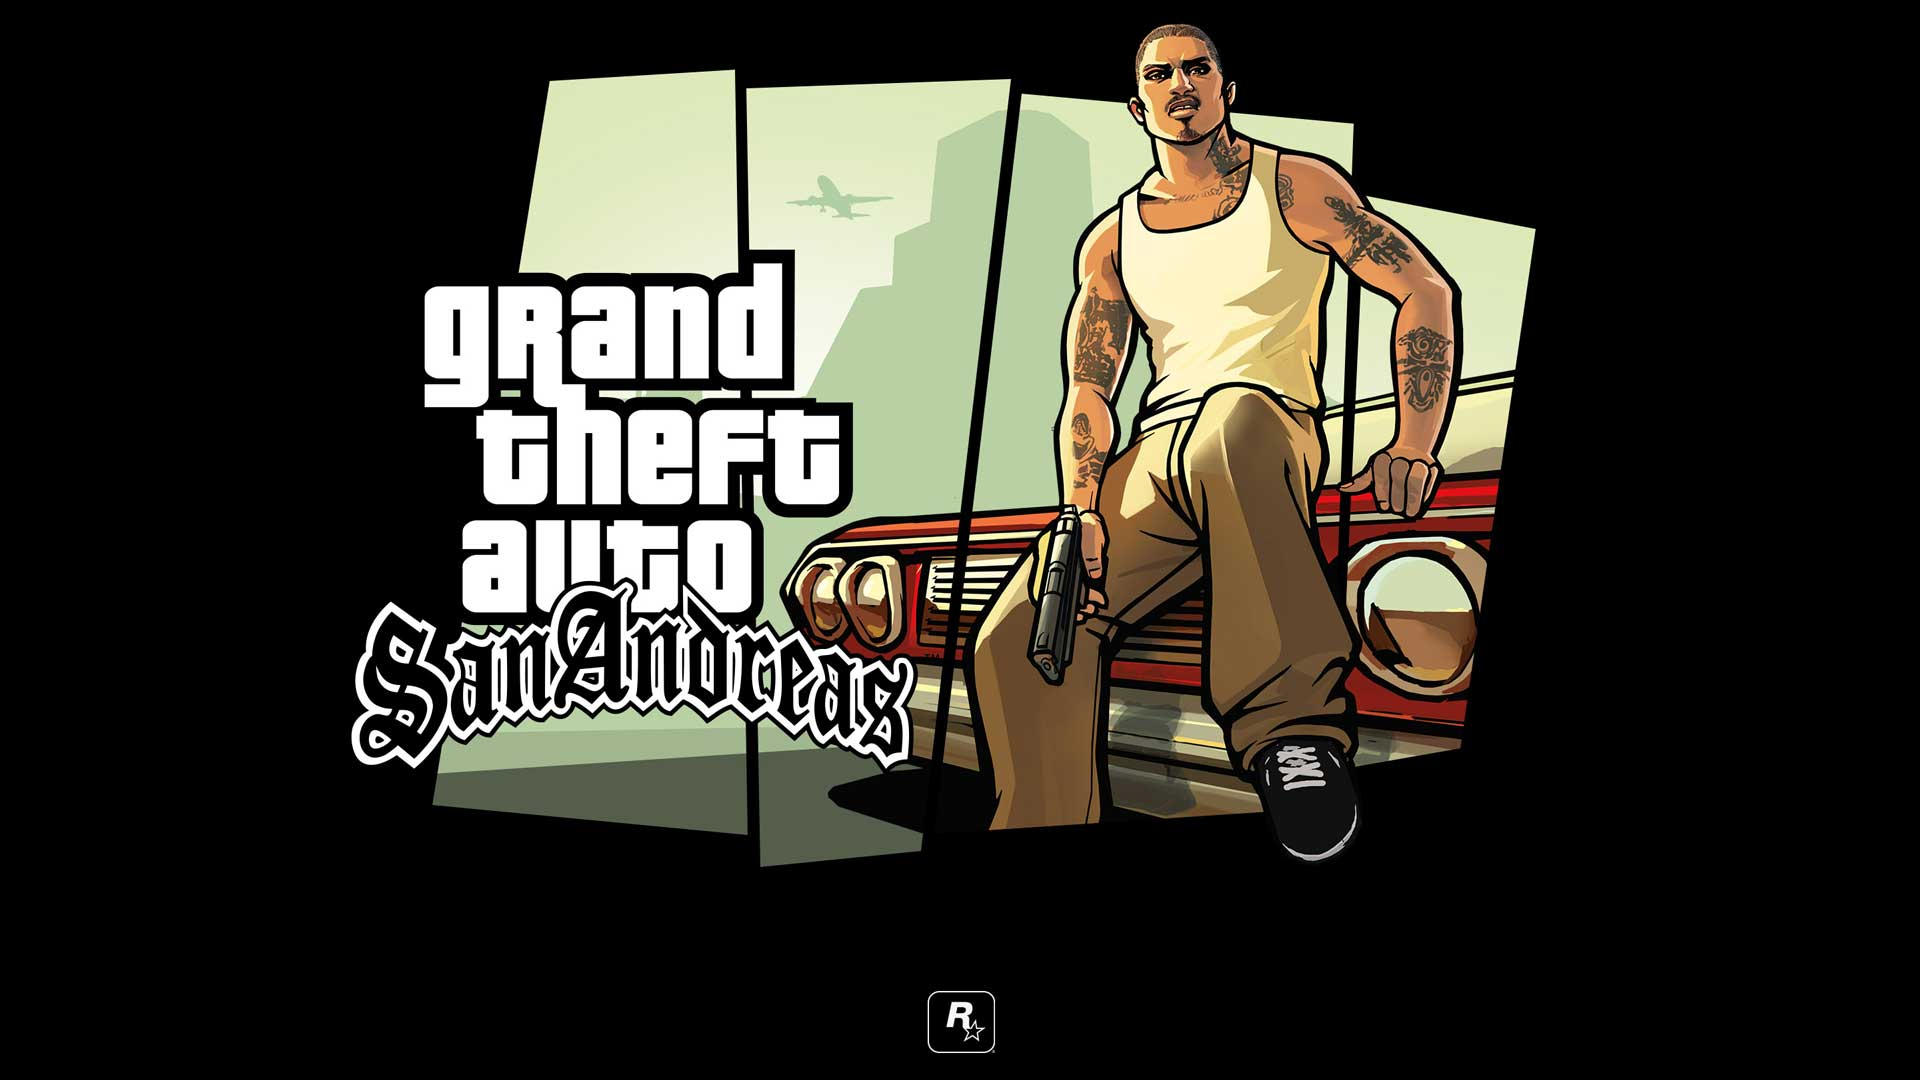 Grand Theft Auto: San Andreas Video